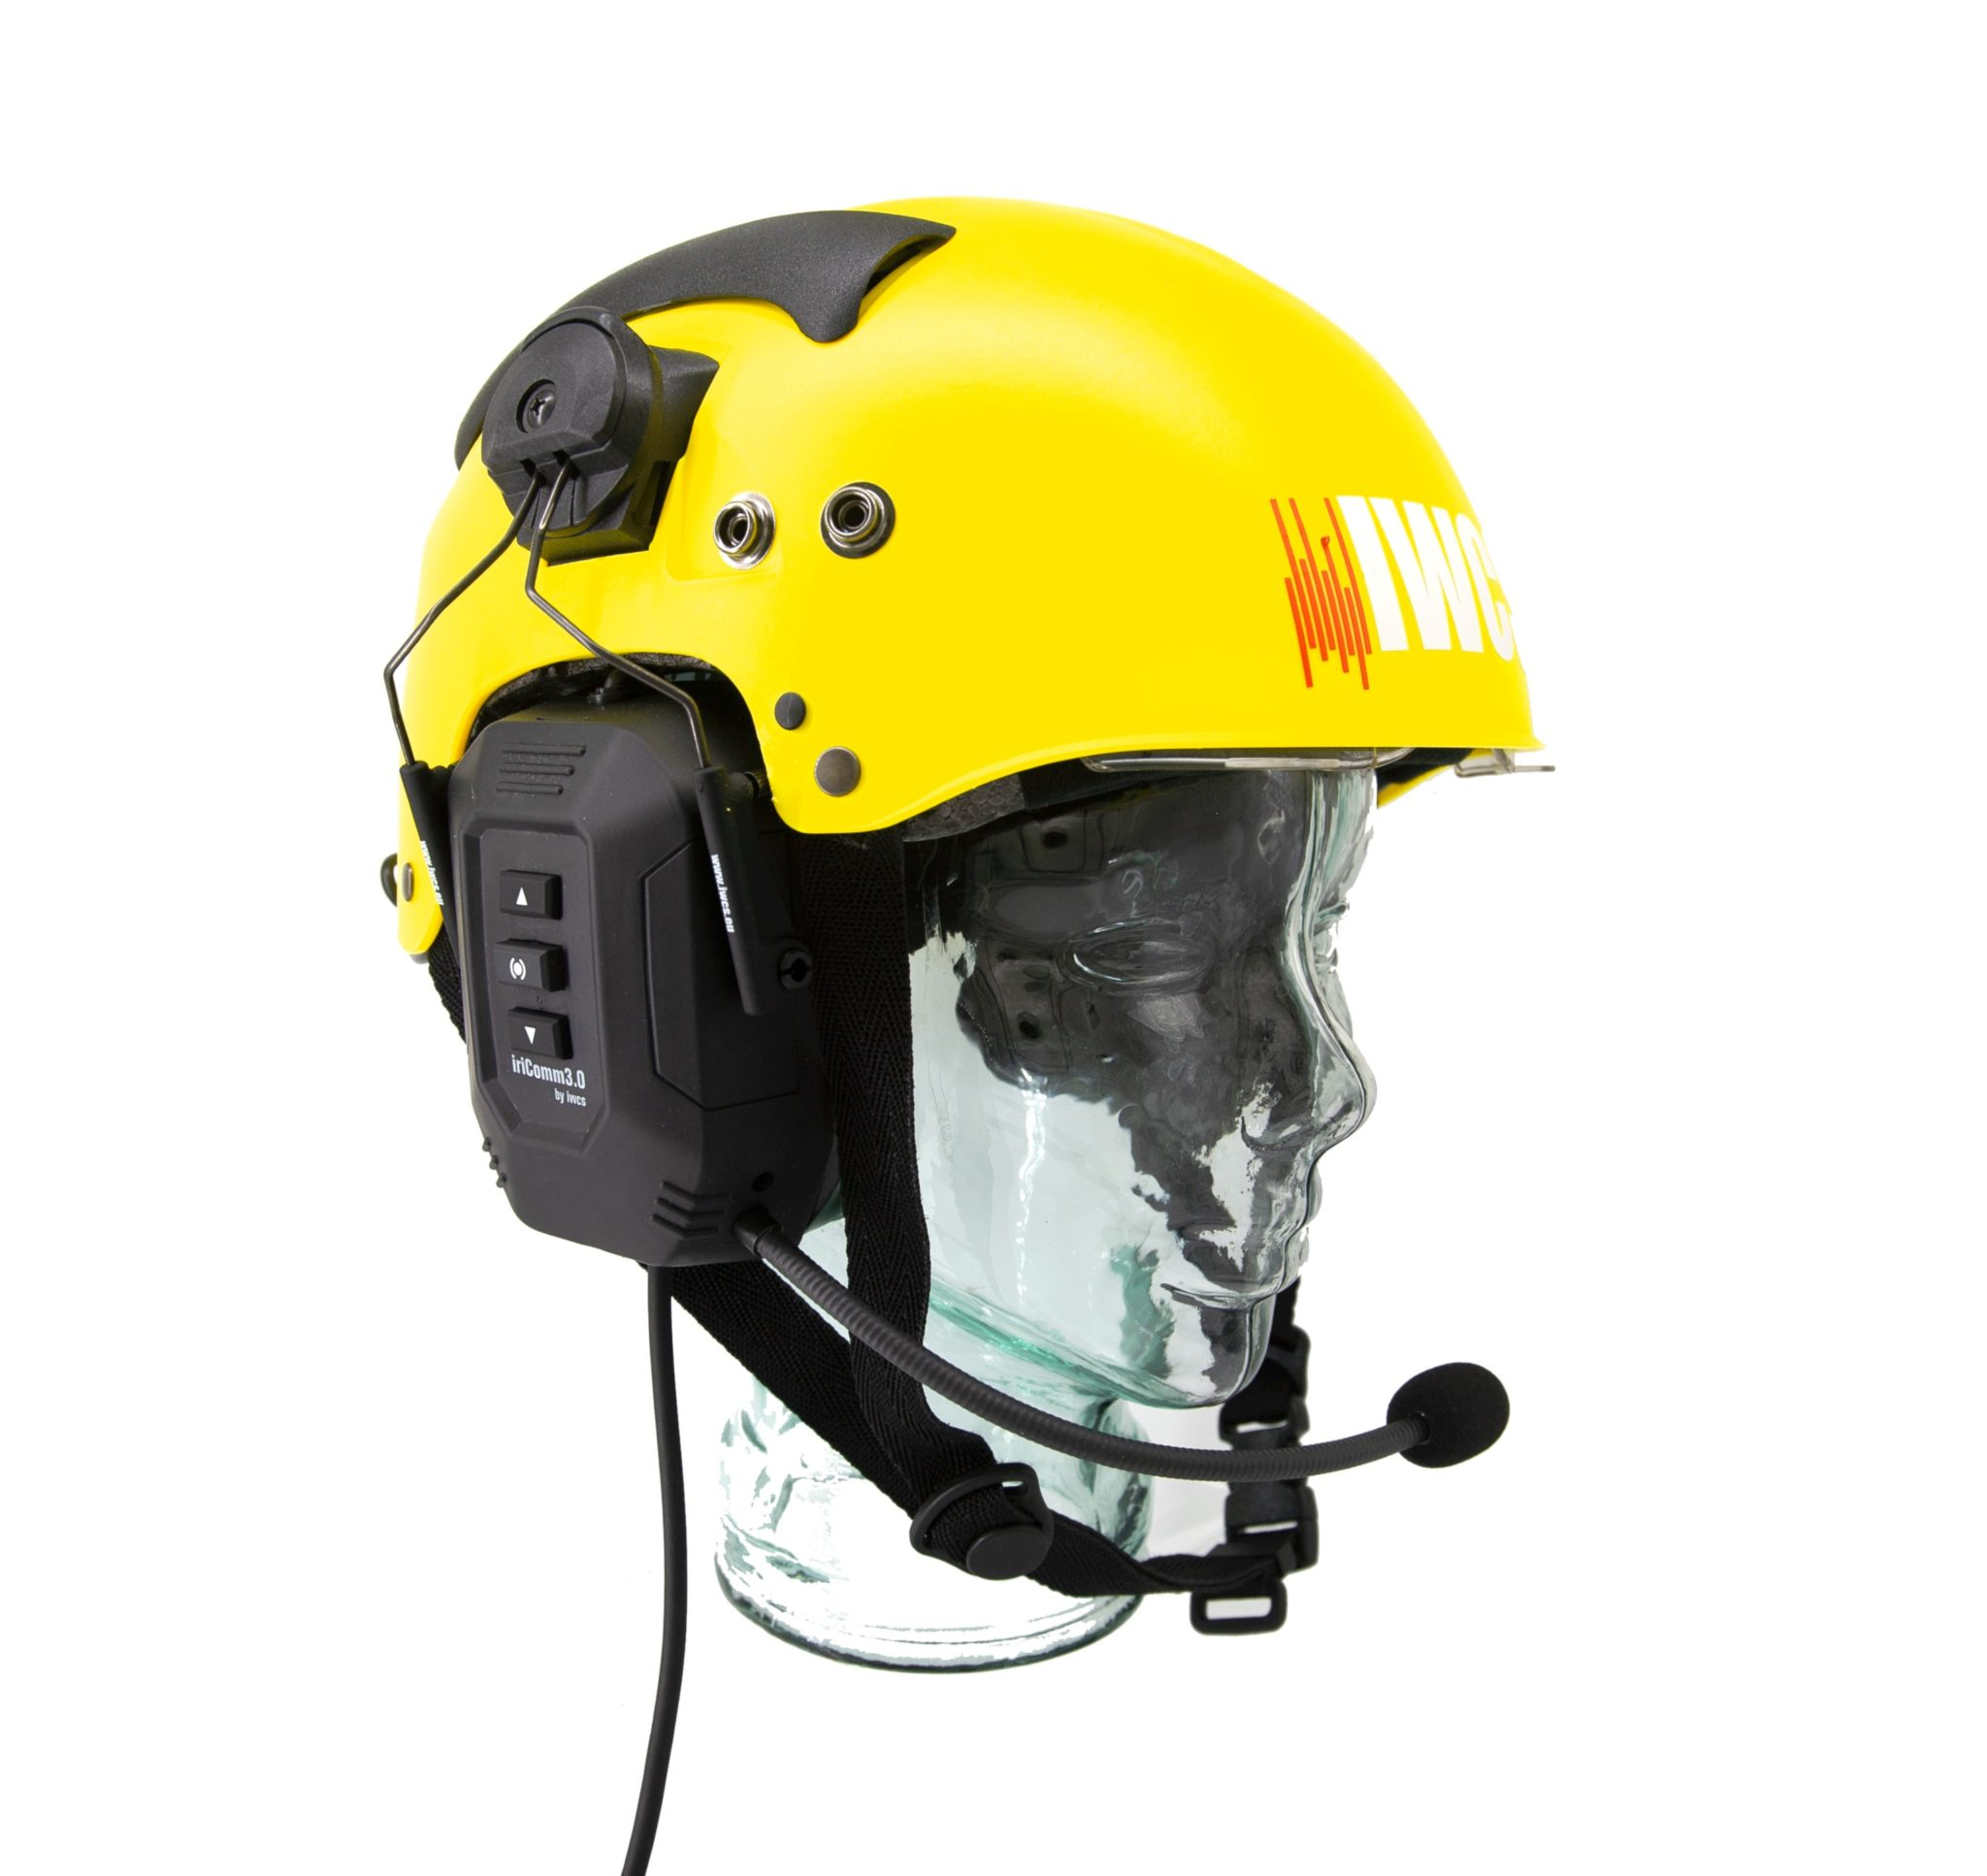 Waterproof and crystal clear communication - helmets